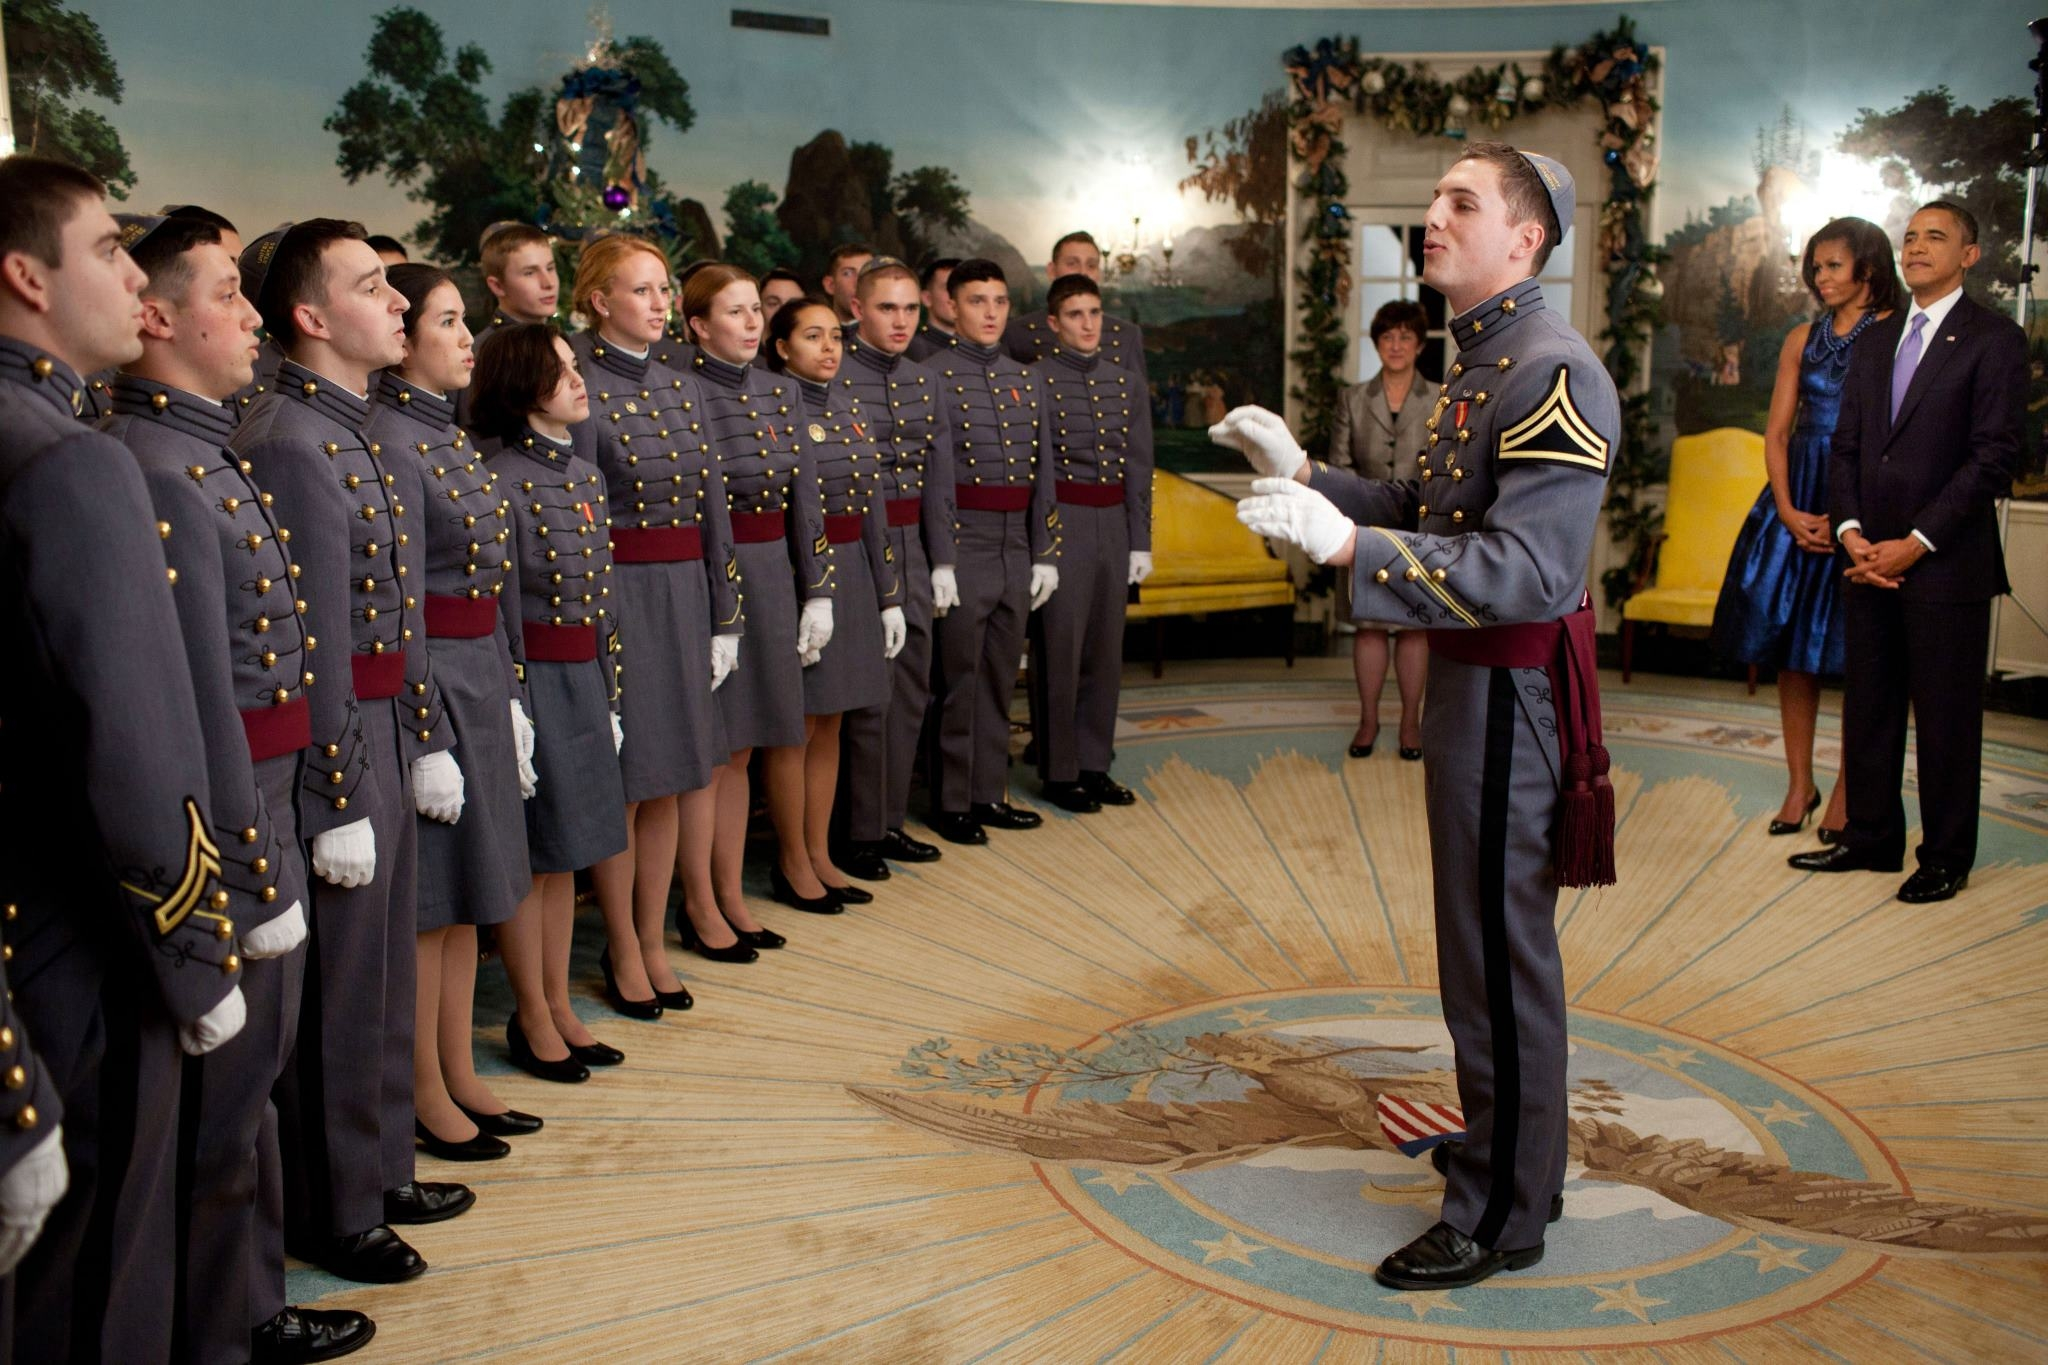 west point u2019s jewish choir sings for the president and gay pride lego gay pride coloring sheets